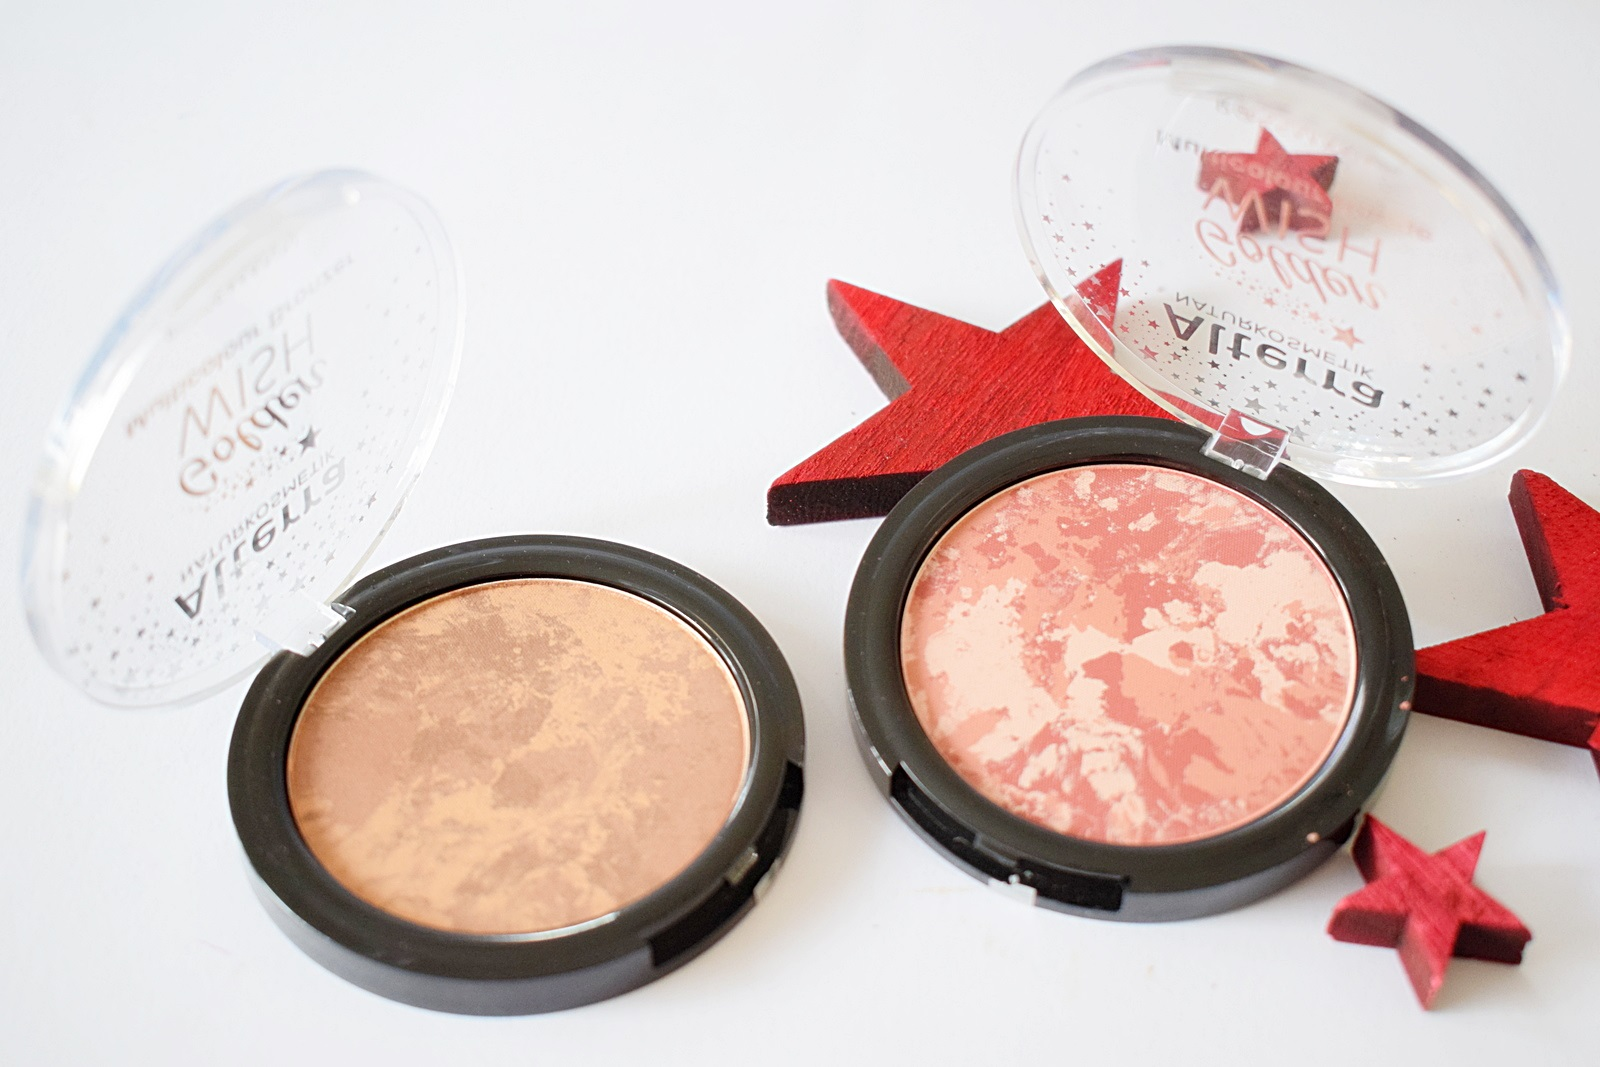 alterra-golden-wwish-bronzer-blush